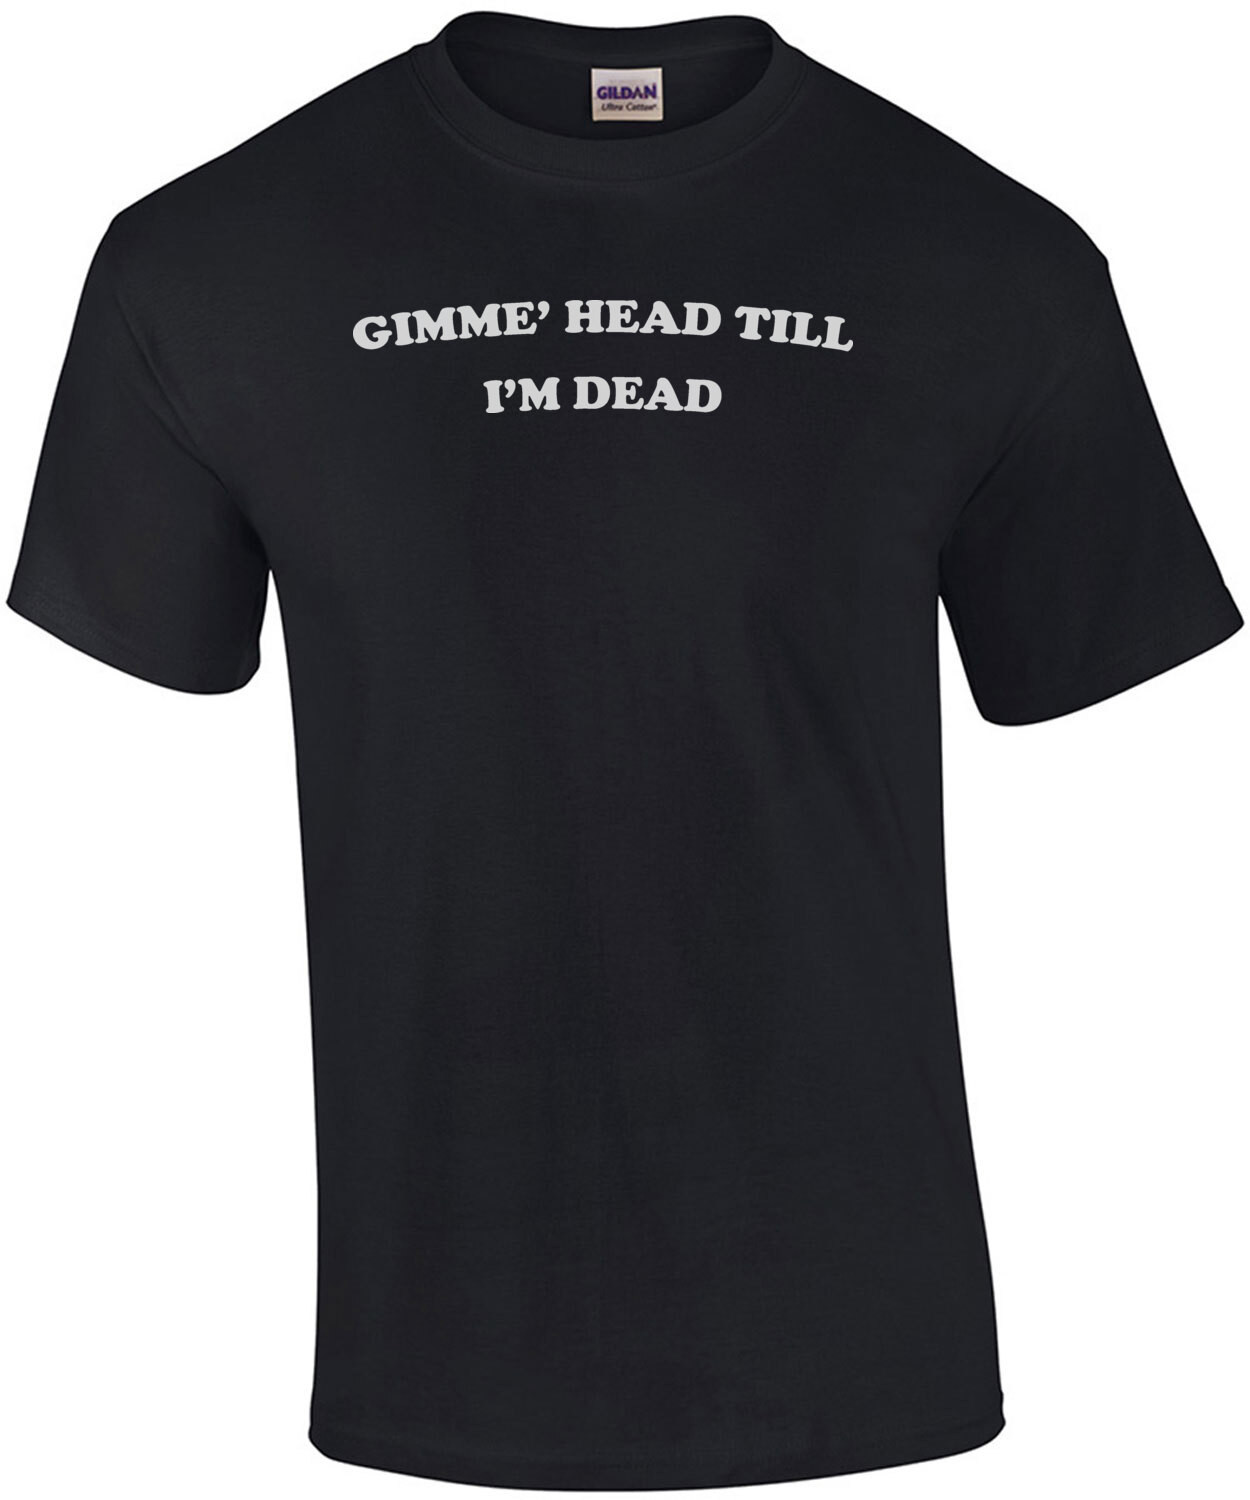 GIMME' HEAD TILL I'M DEAD - funny t-shirt worn by Booger in the 80's comedy Revenge of the Nerds - funny 80's T-Shirt